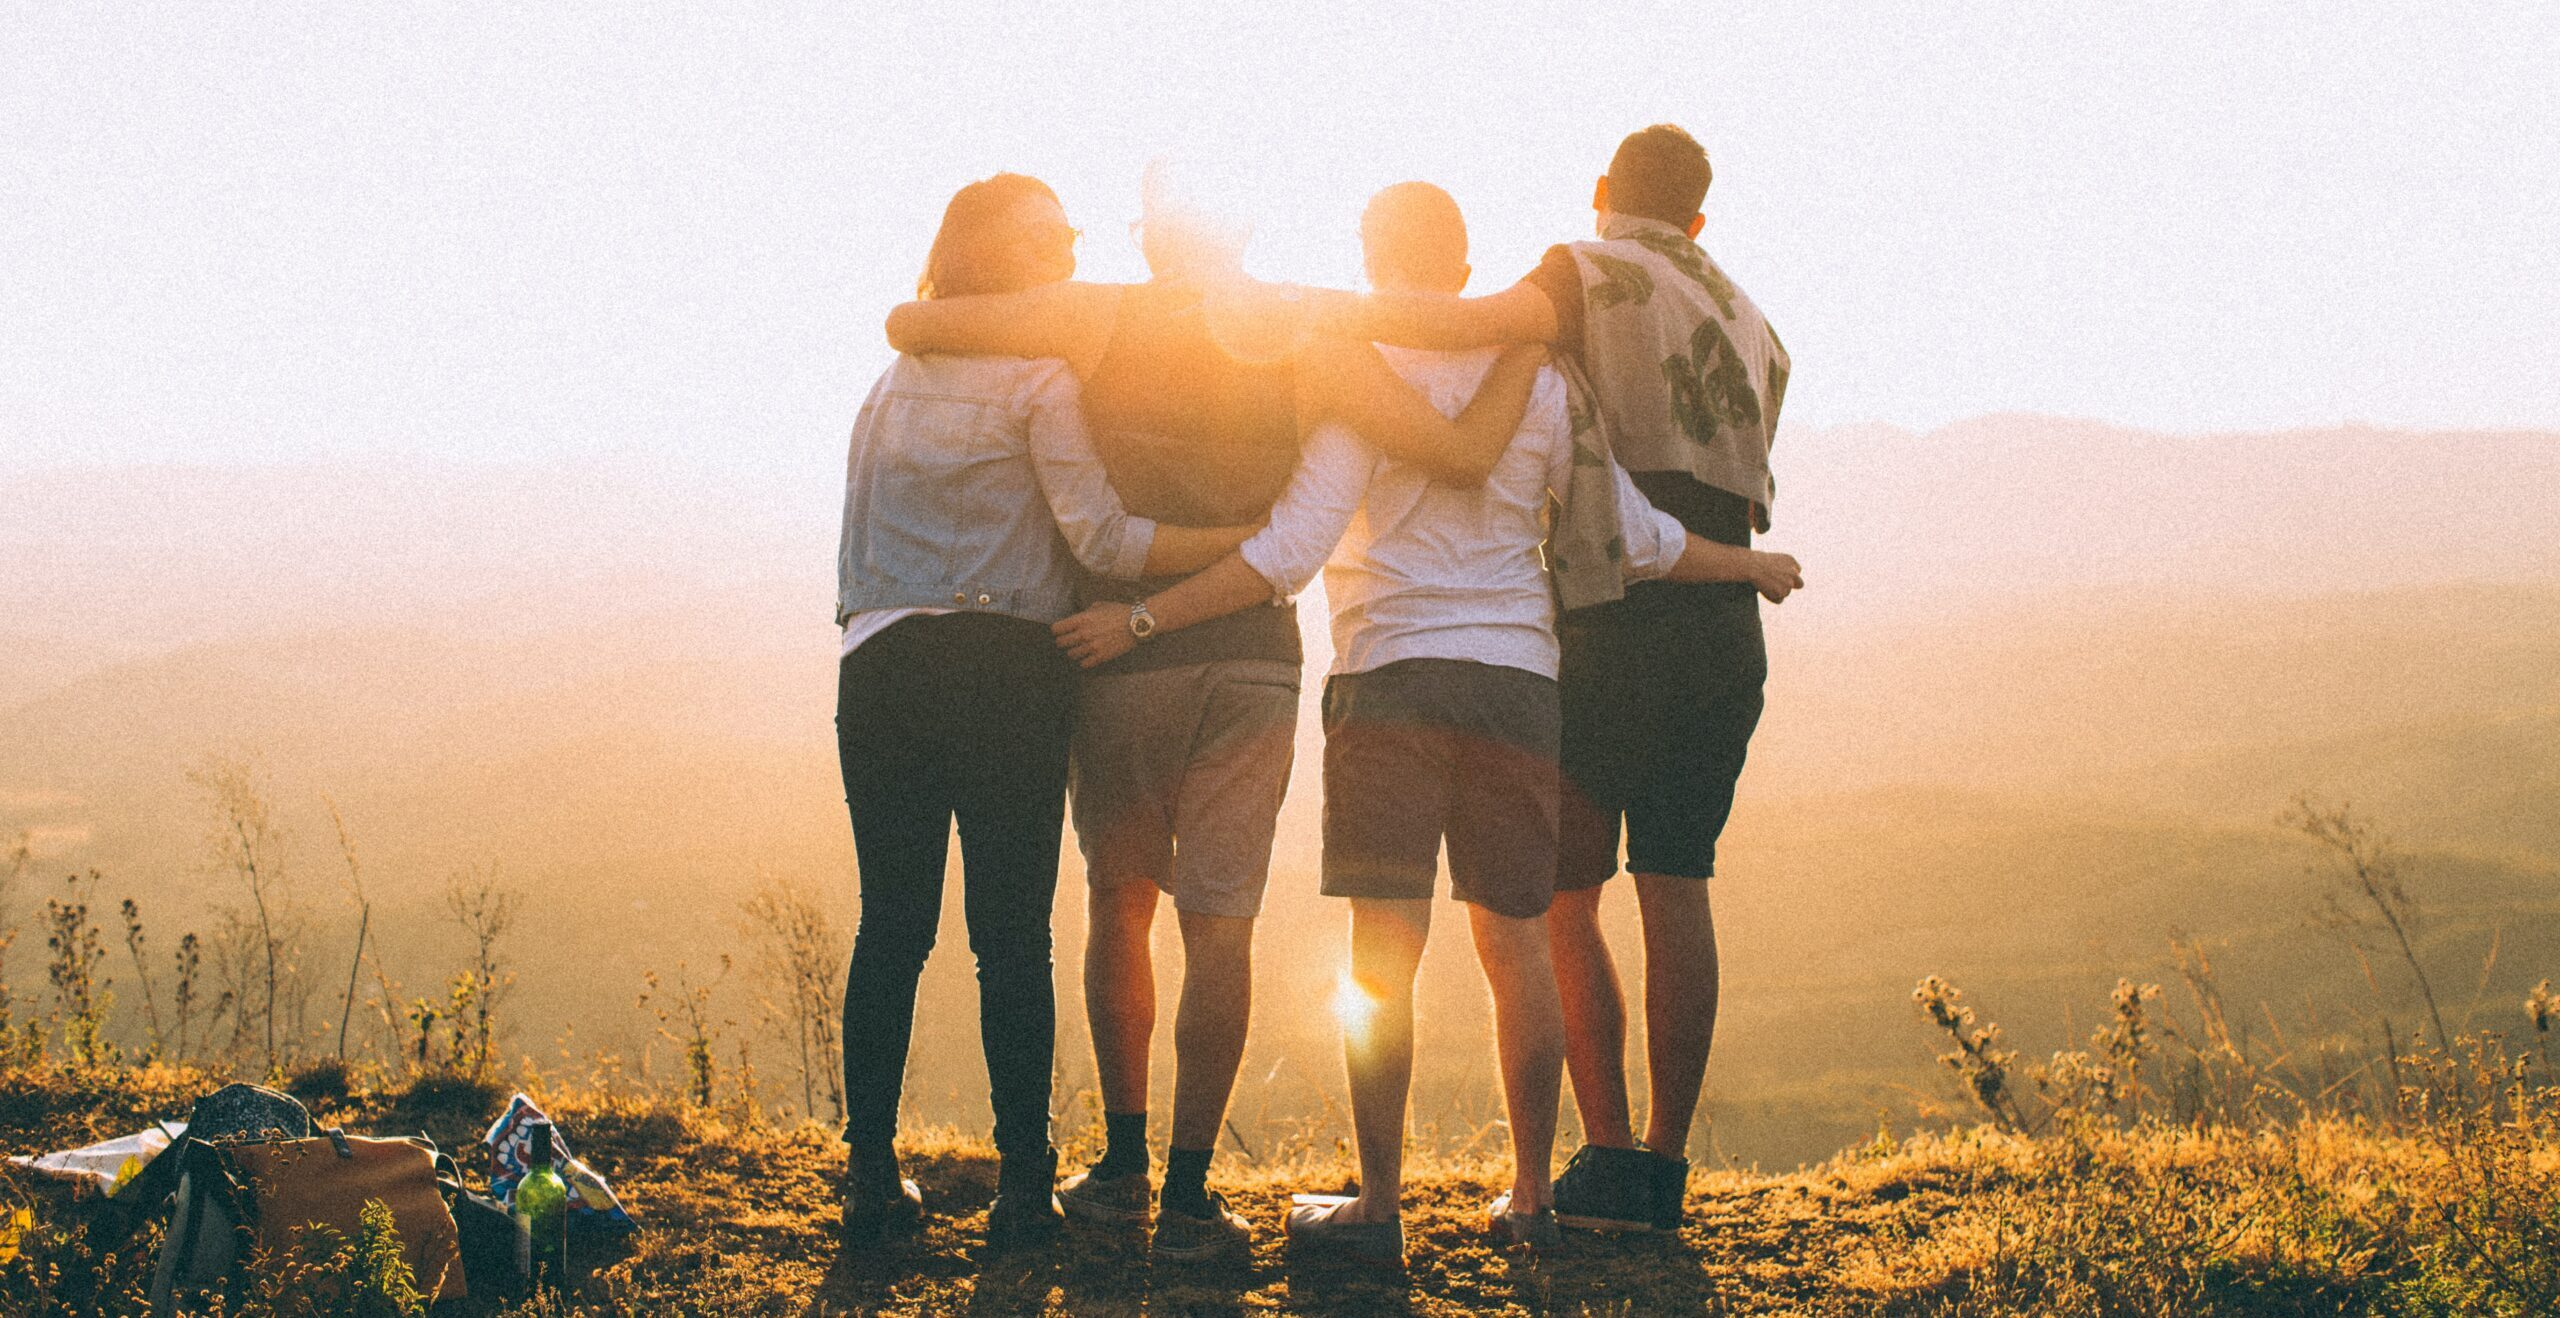 Group of four people watching the sunset